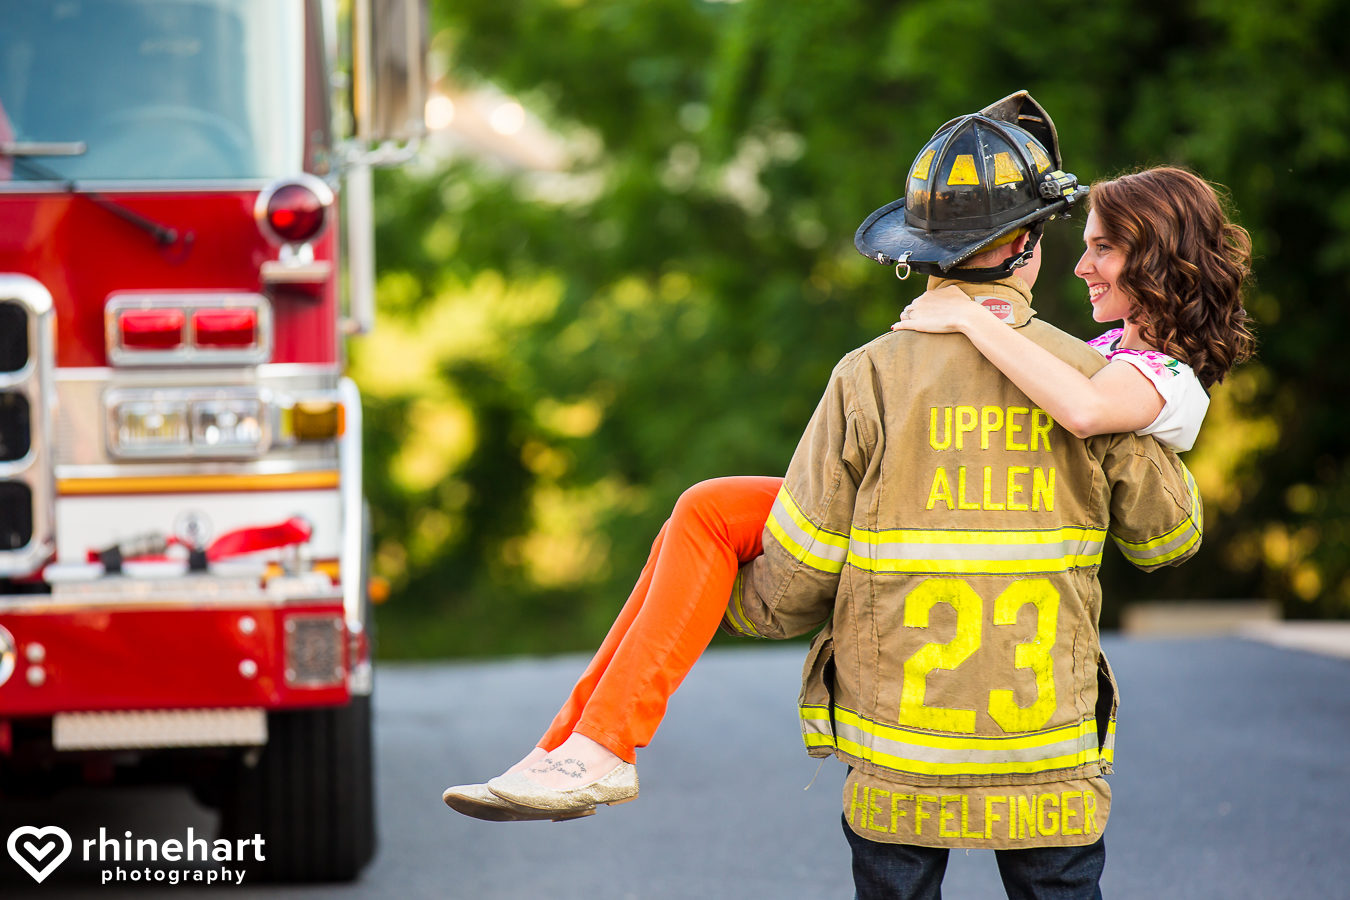 firefighter-engagement-creative-best-carlisle-harrisburg-camp-hill-messiah-college-engagement-1